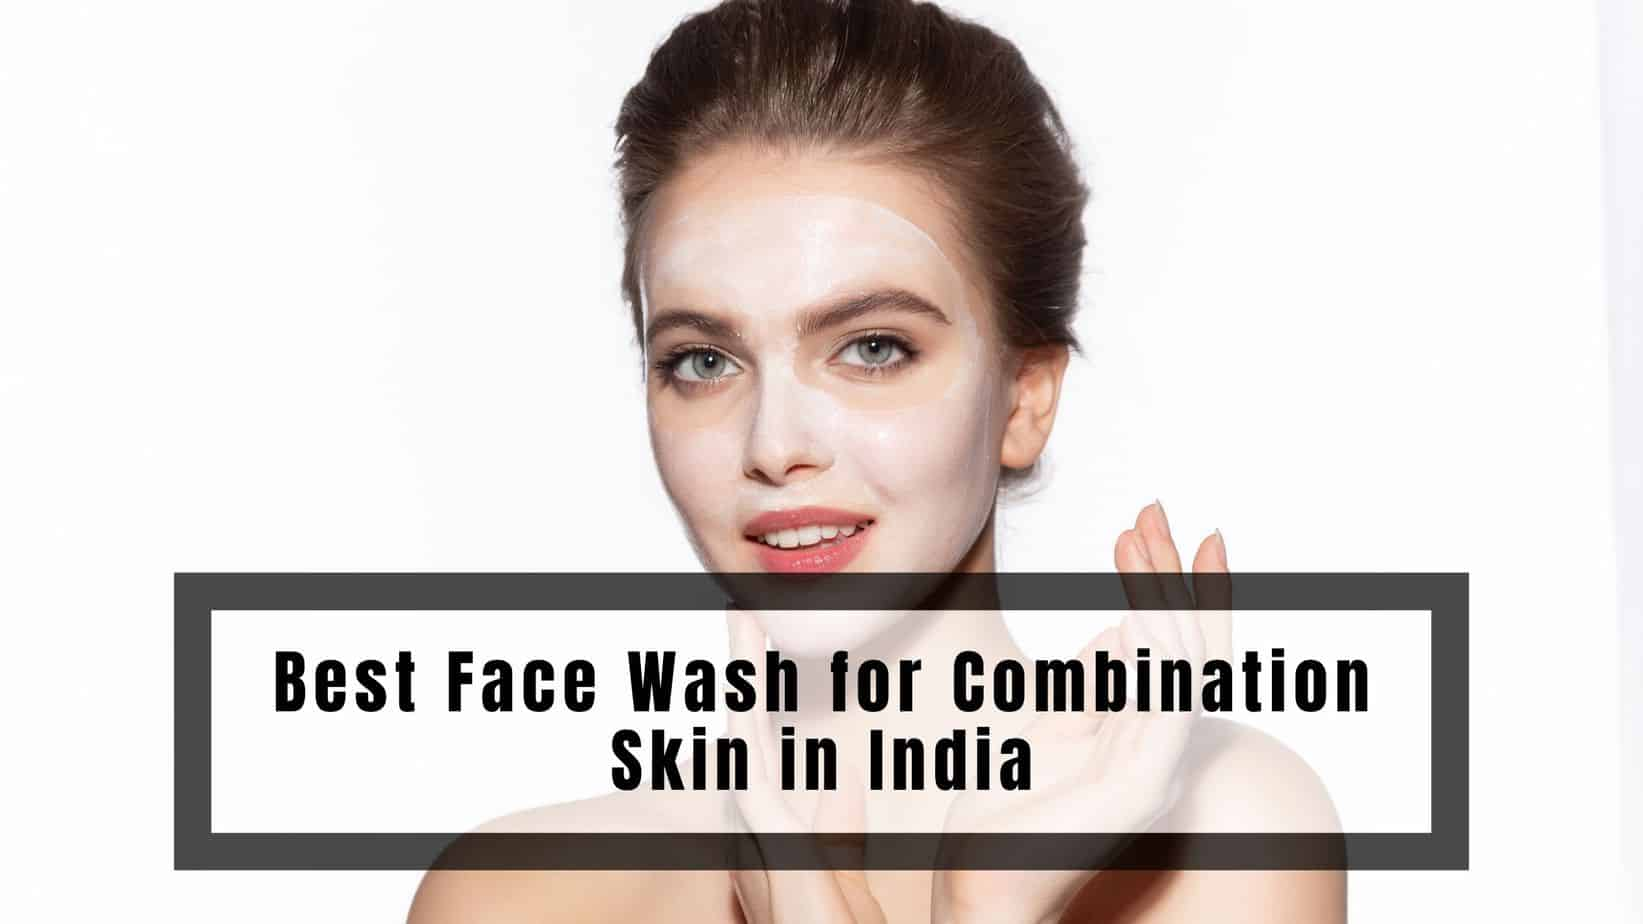 Best Face Wash for Combination Skin in India